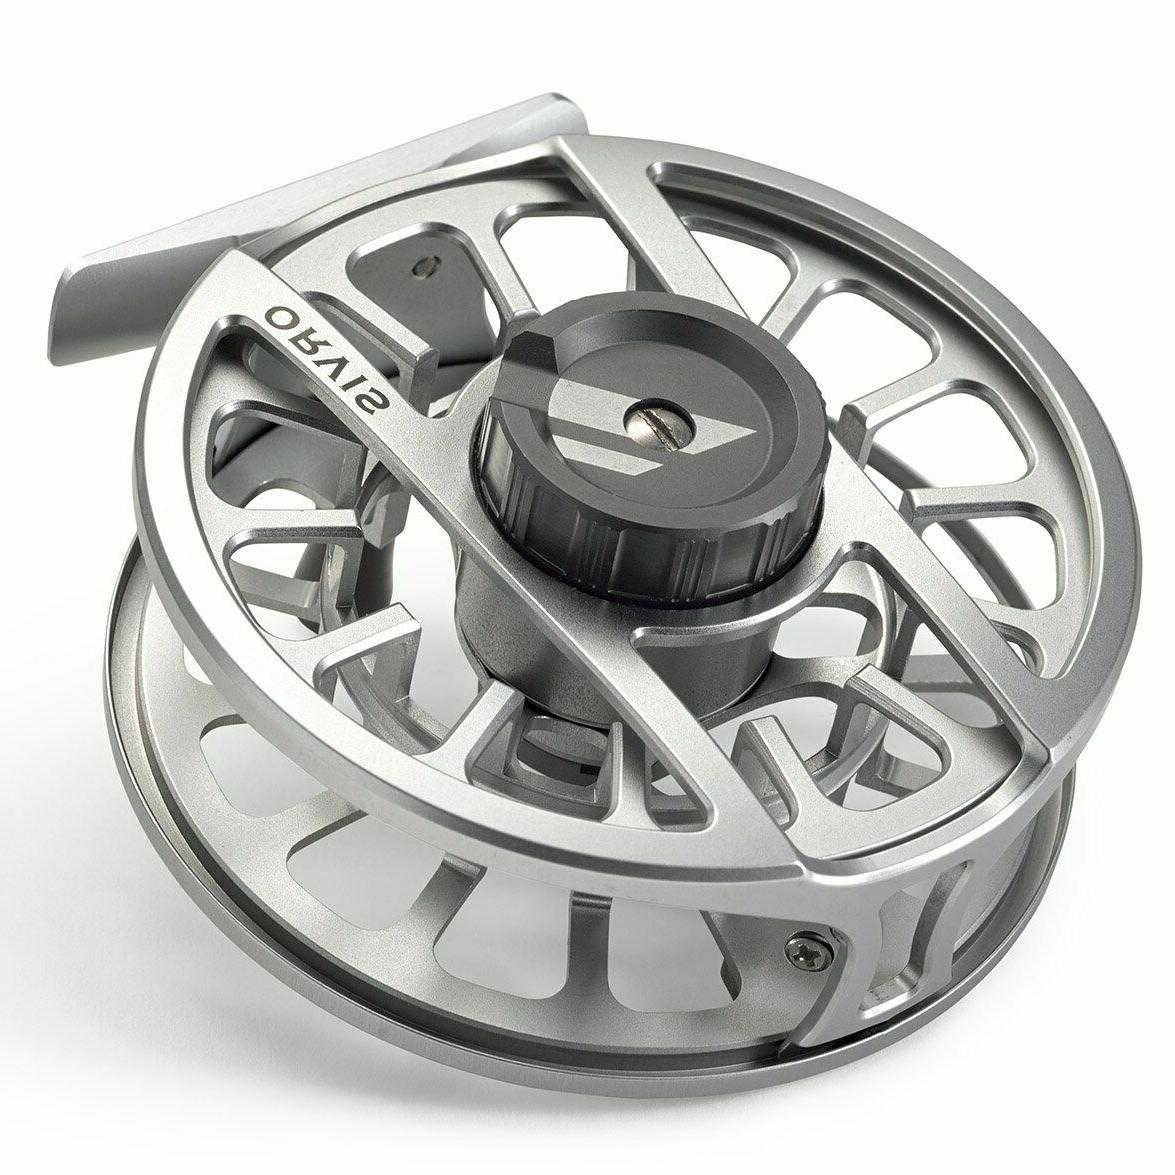 NEW ORVIS HYDROS FLY REEL FOR 8 9 WT FREE US SHIP